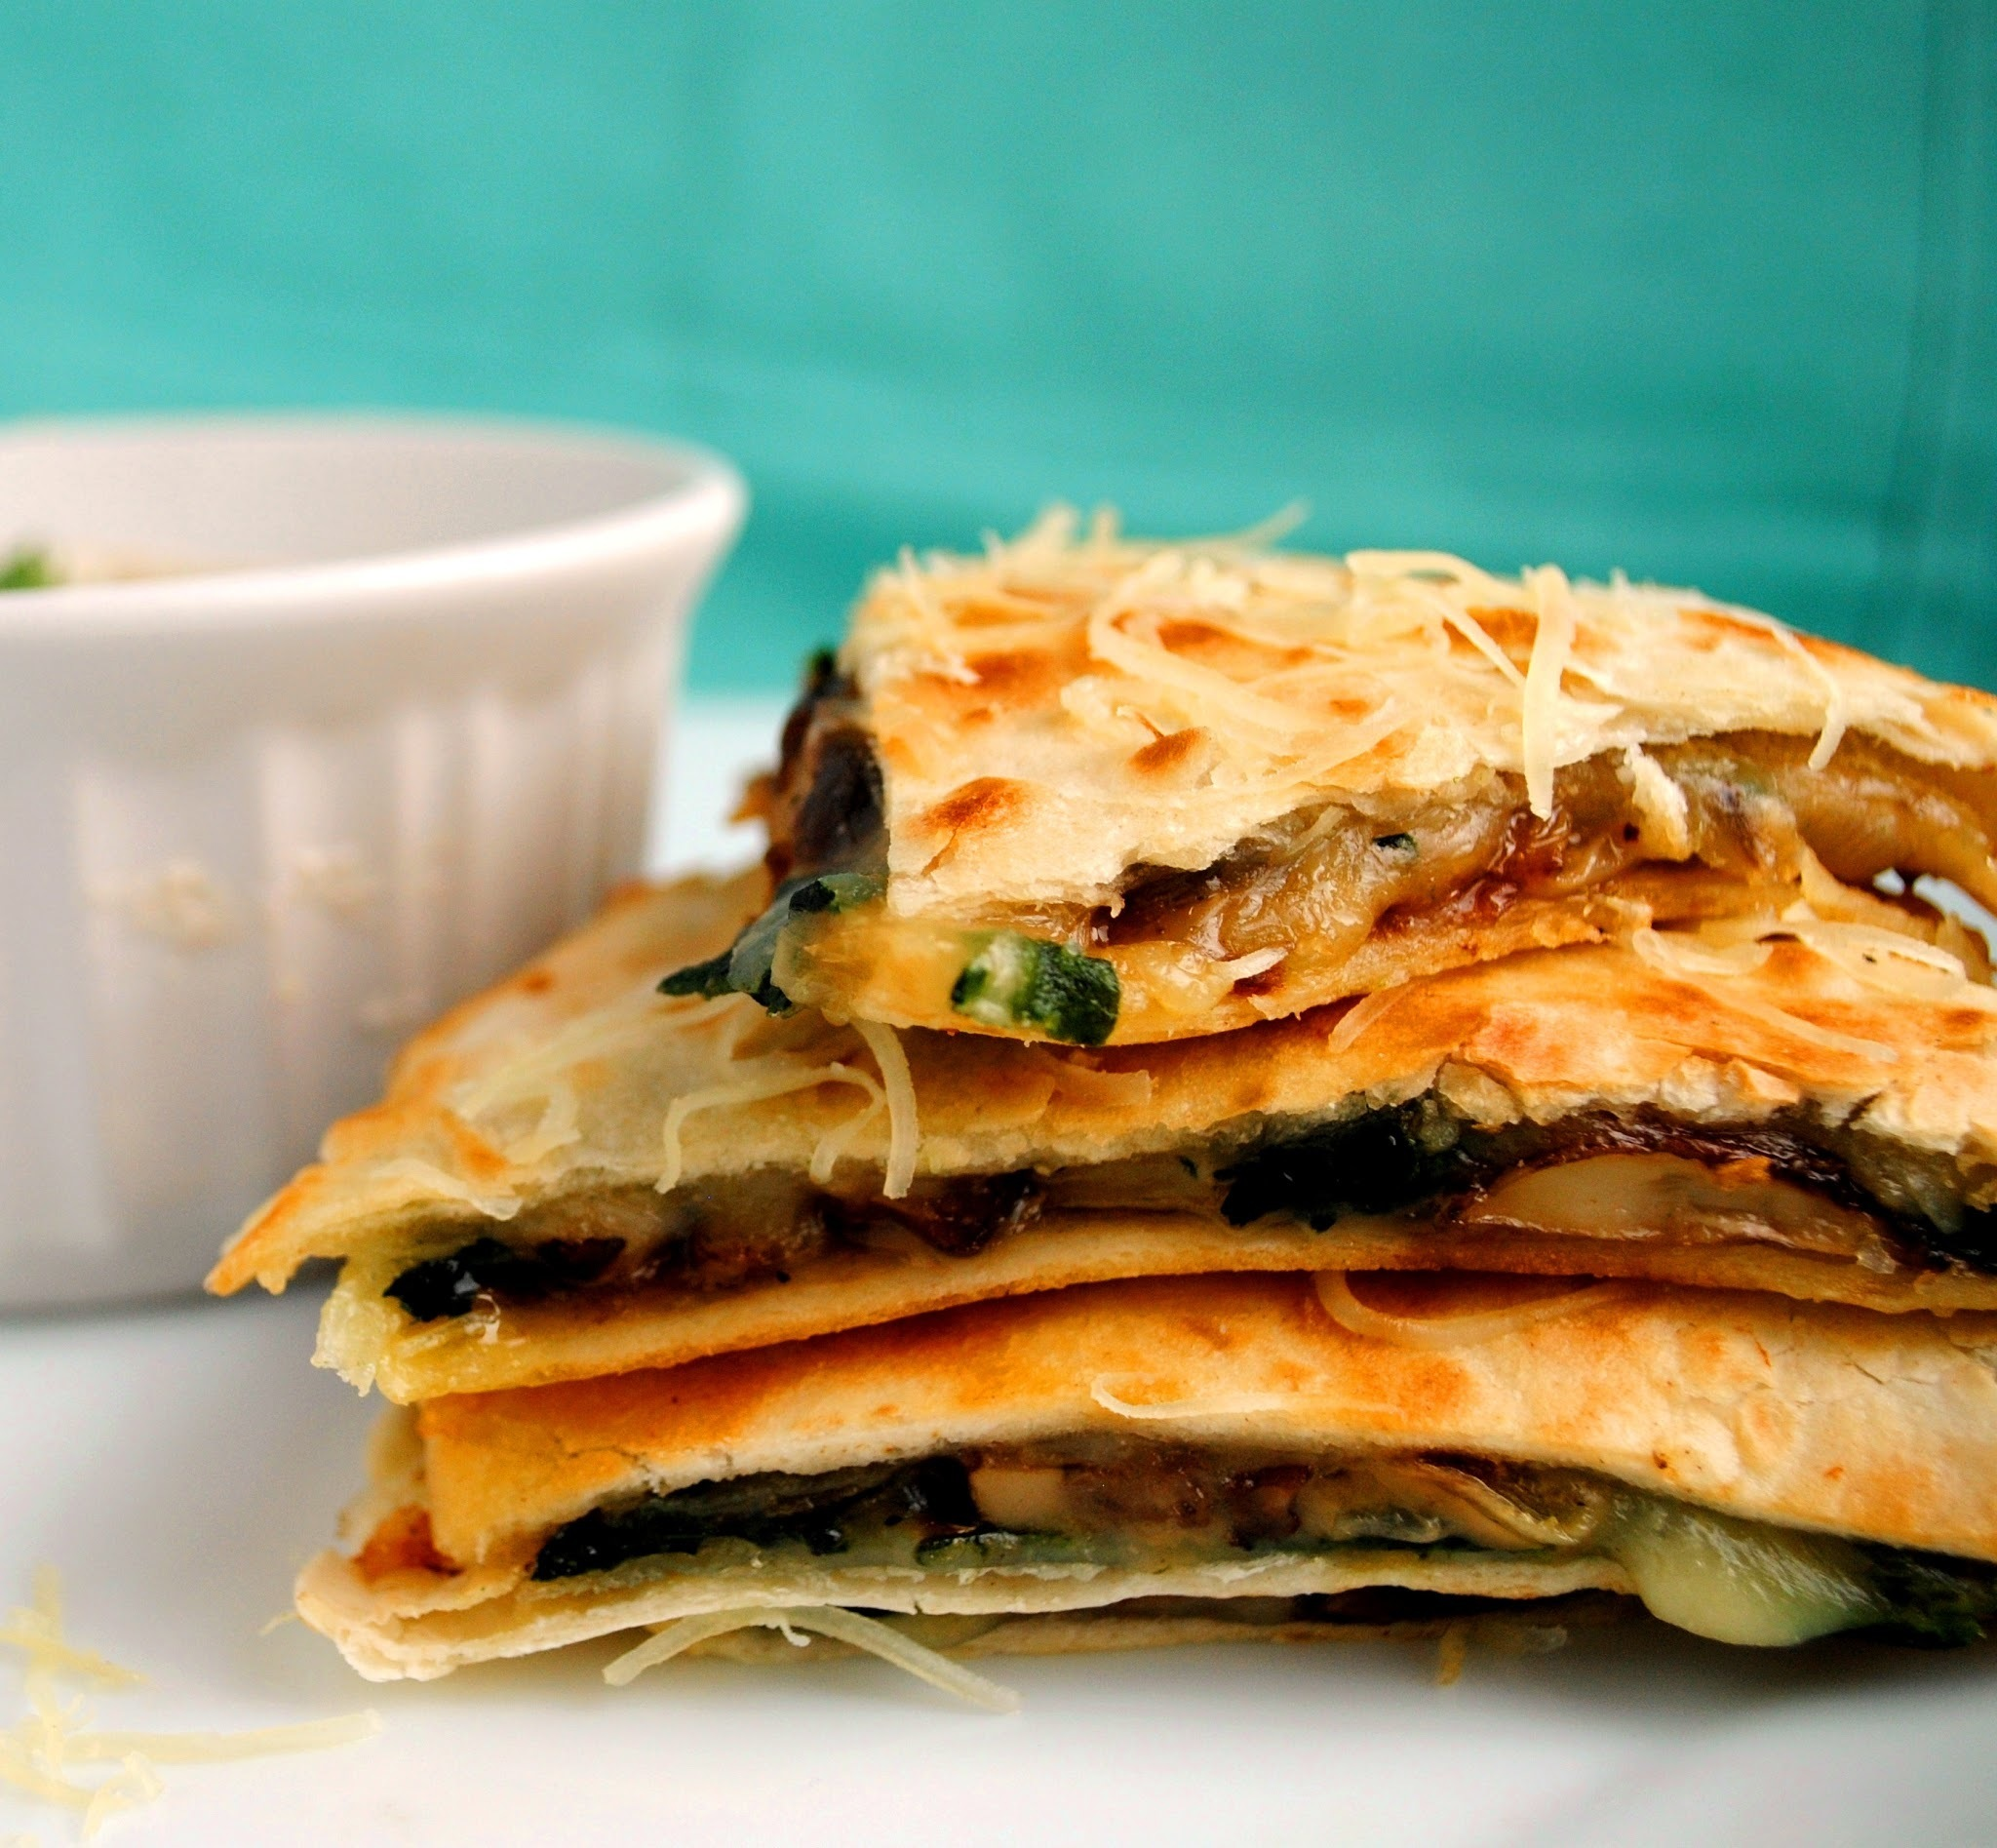 Spinach and Mushroom Quesadillas with Cilantro Lime Dipping Sauce